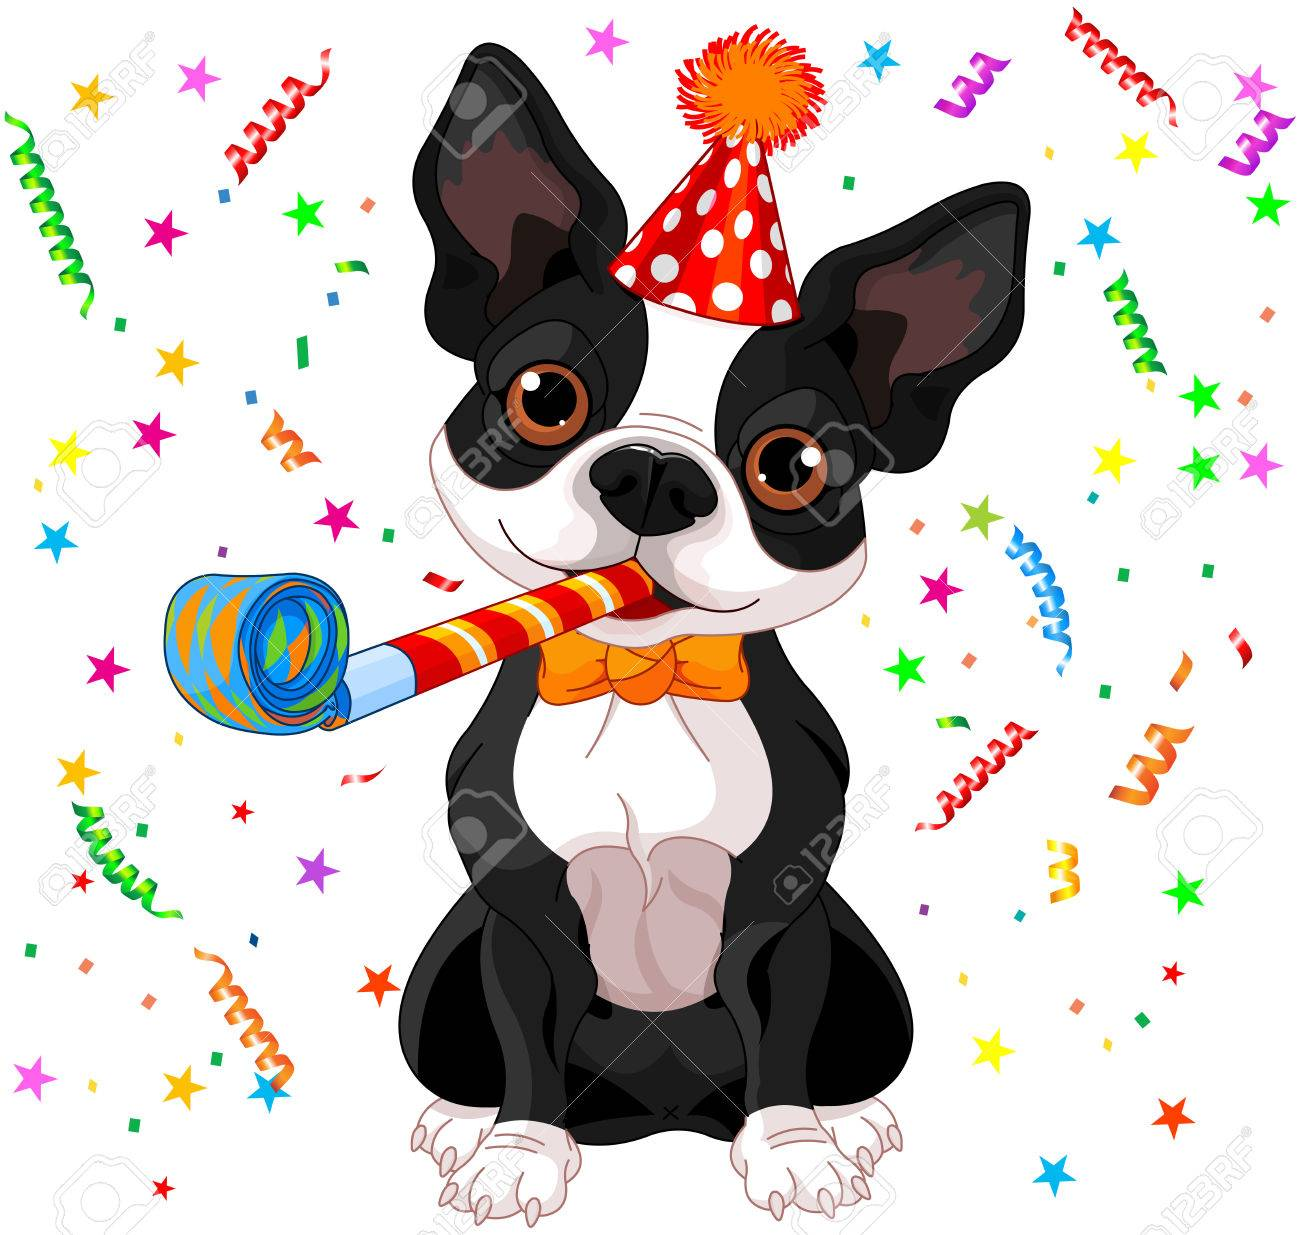 Excitation et jeu: comment gérer? 35588778-illustration-of-cute-boston-terrier-celebrating